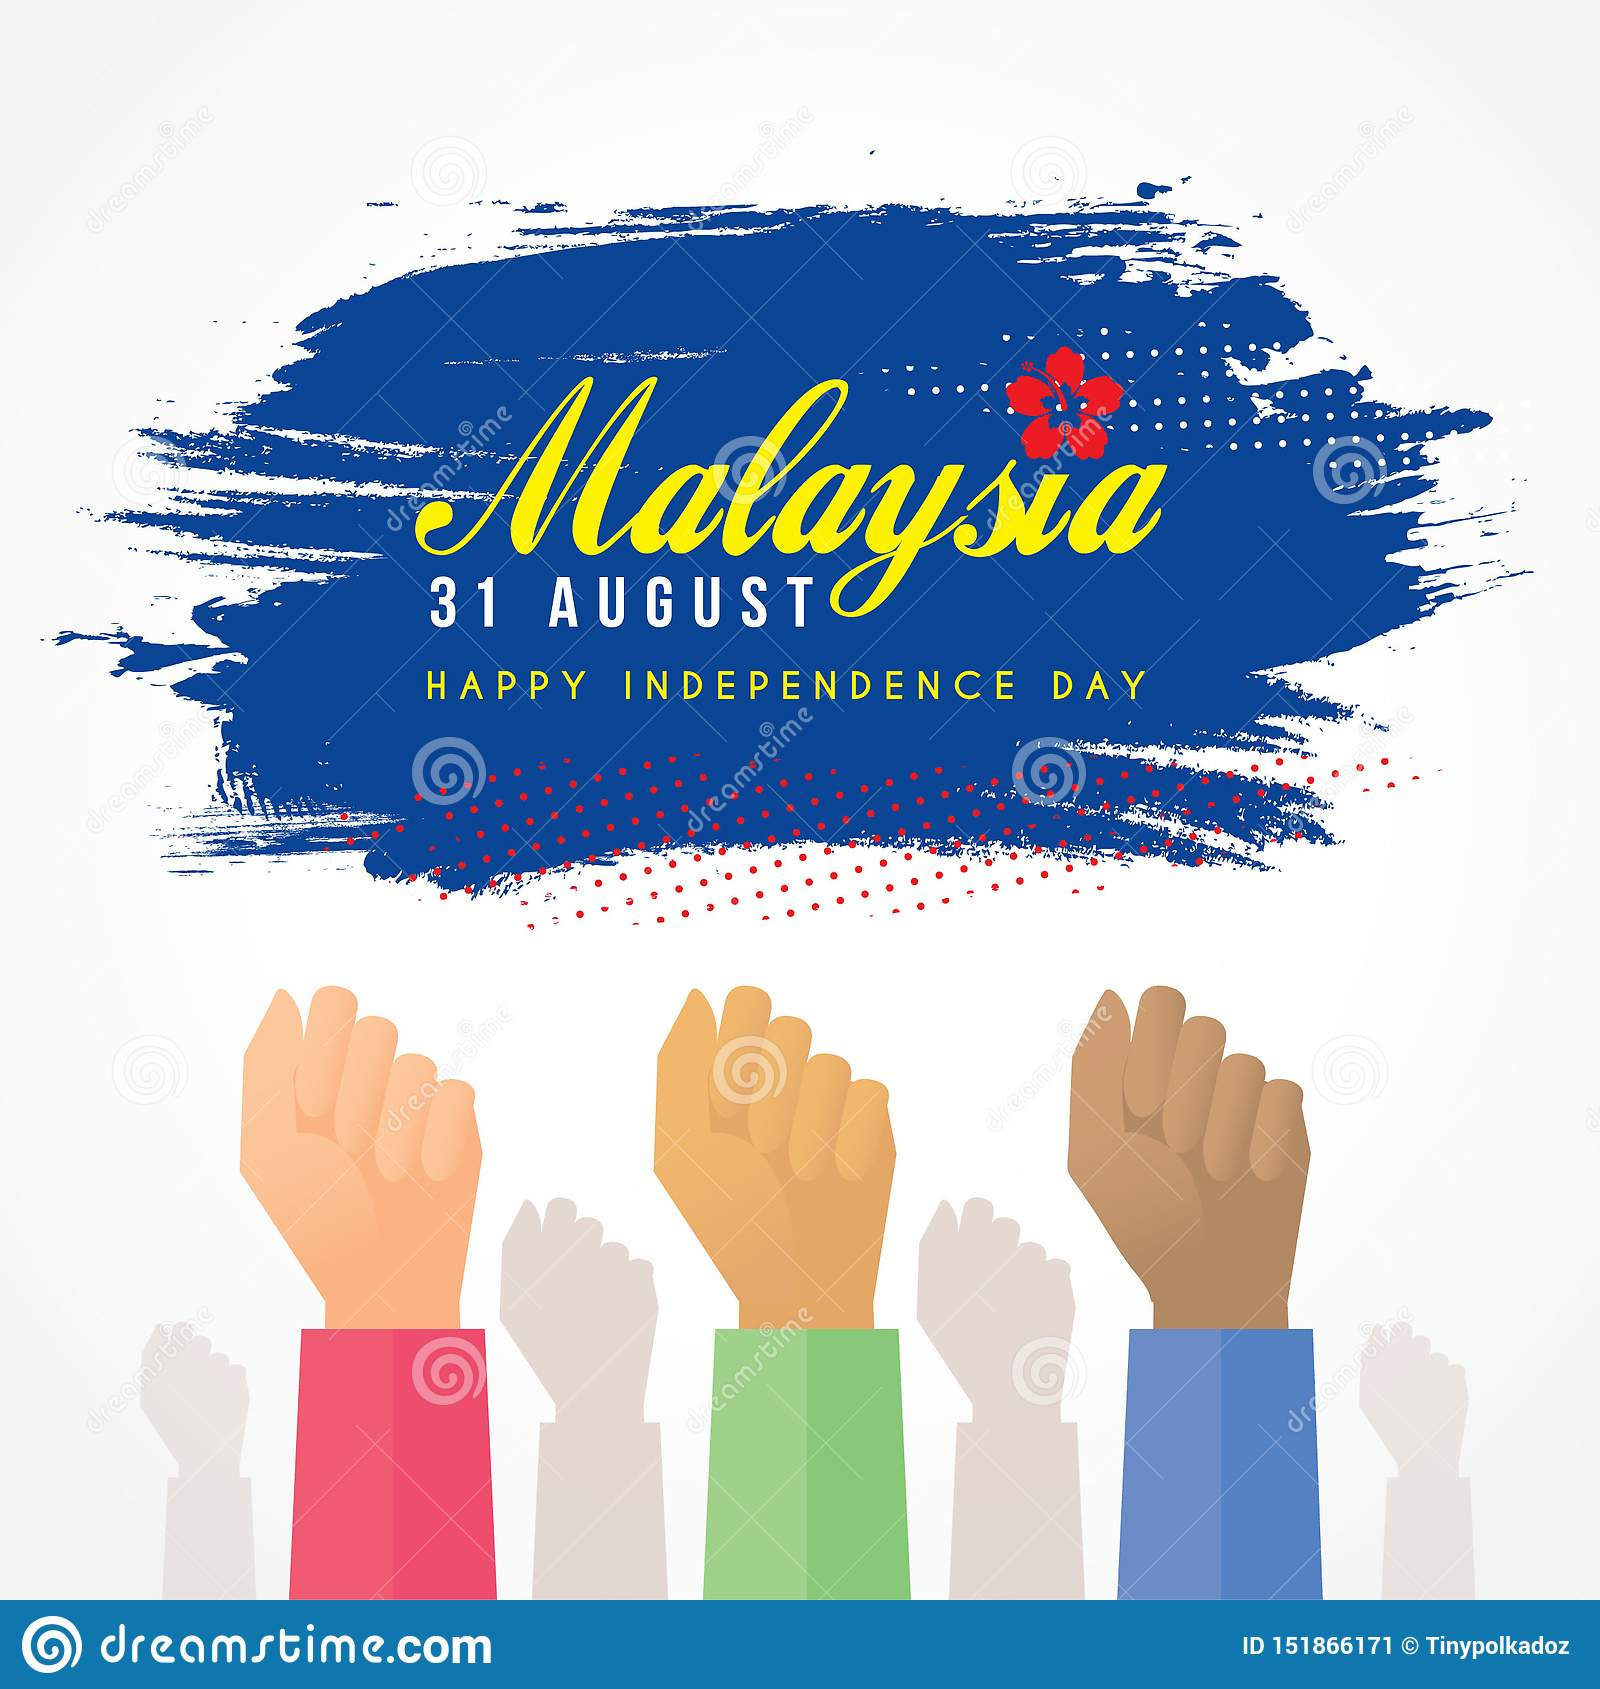 31 August - Malaysia Independence Day